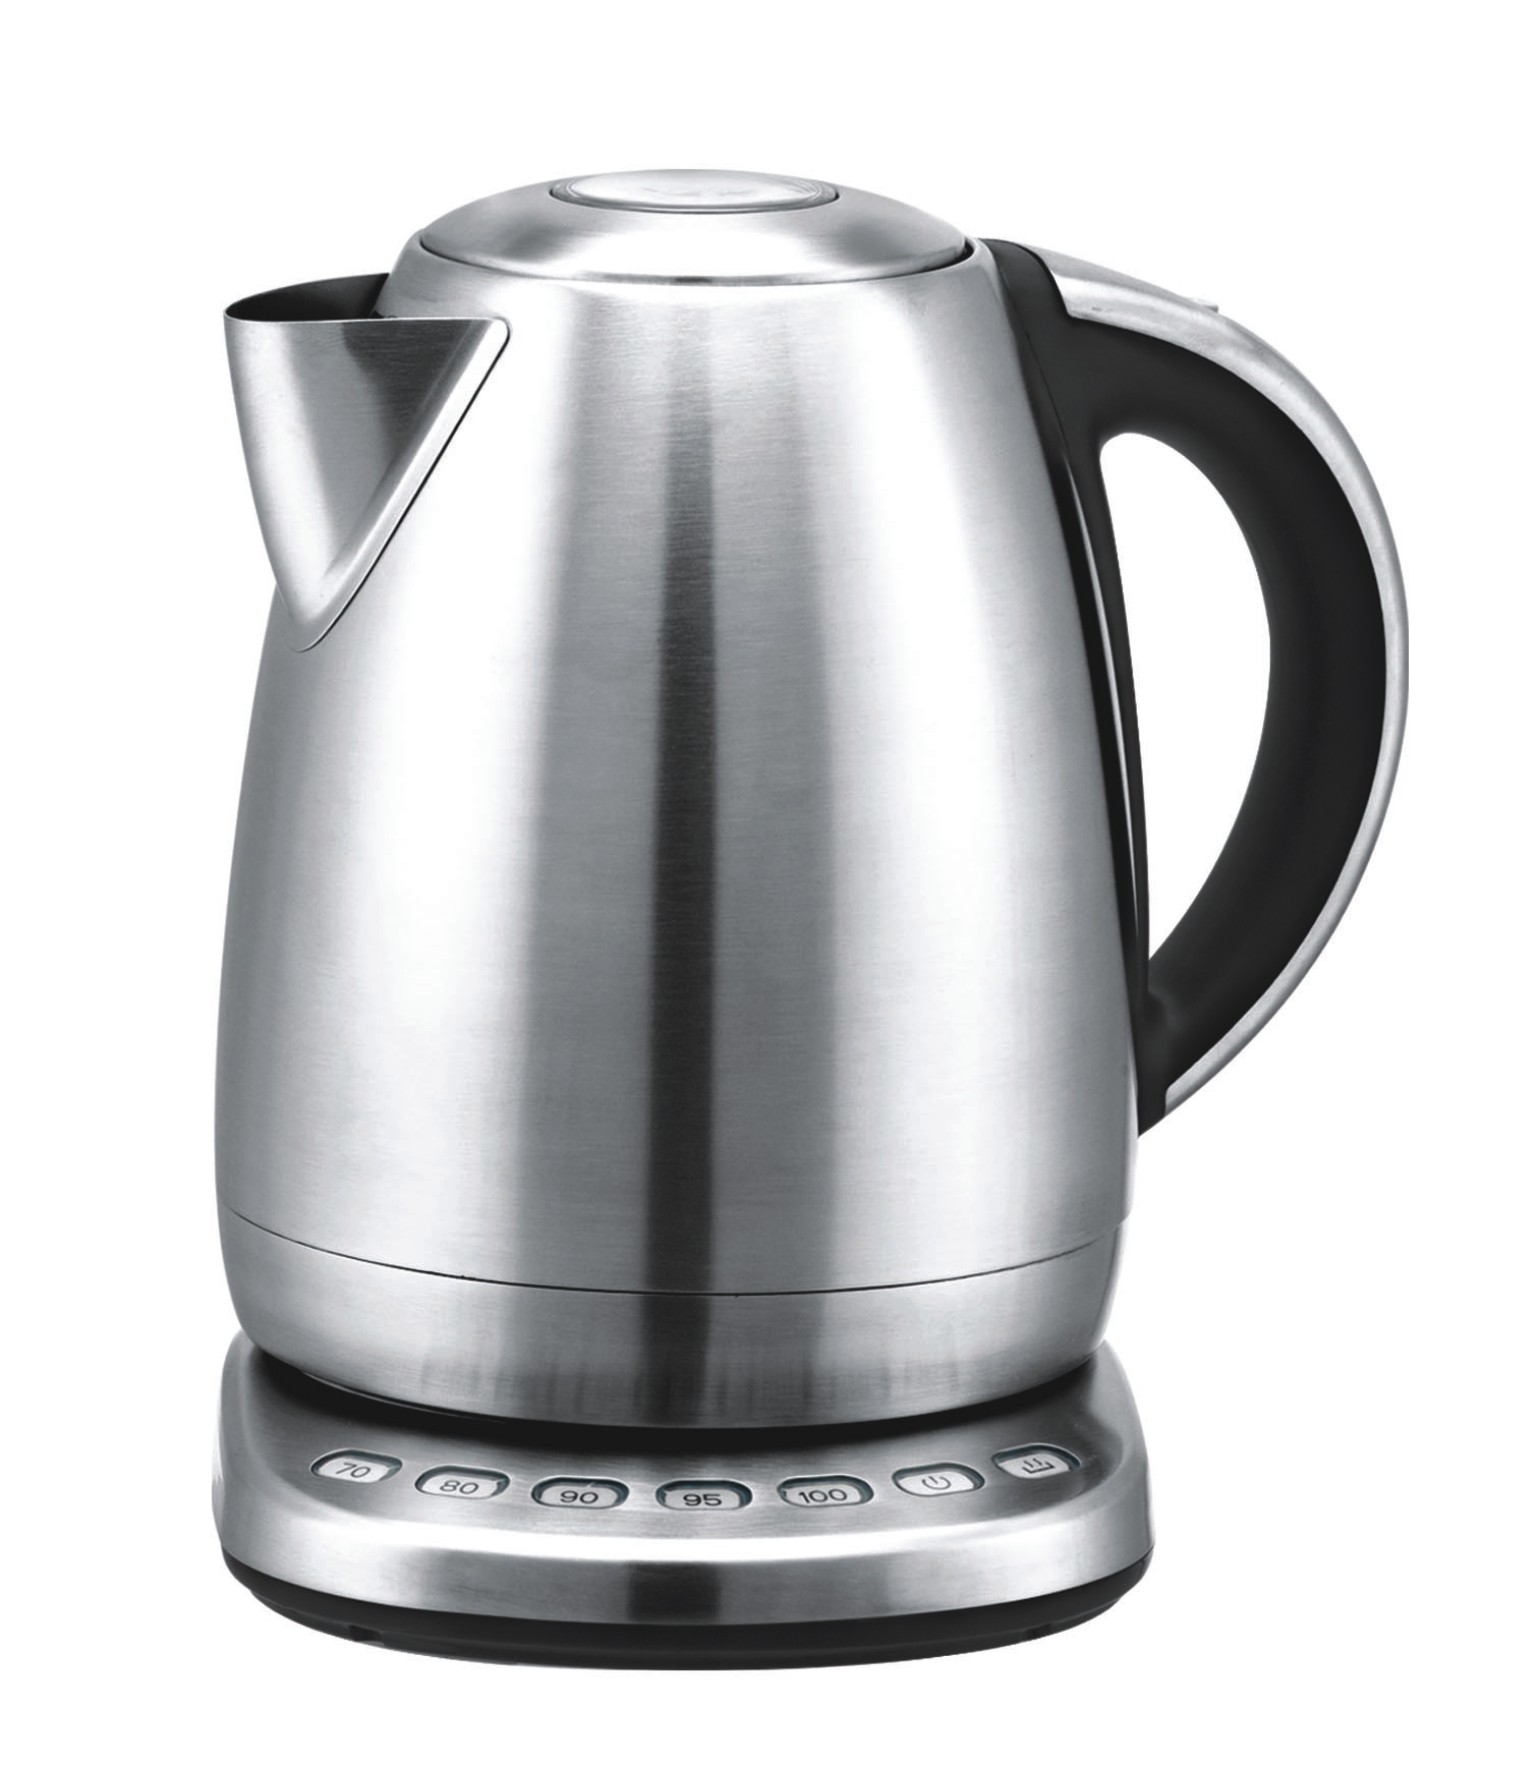 Stainless steel Electric tea kettle HB-3086-E3